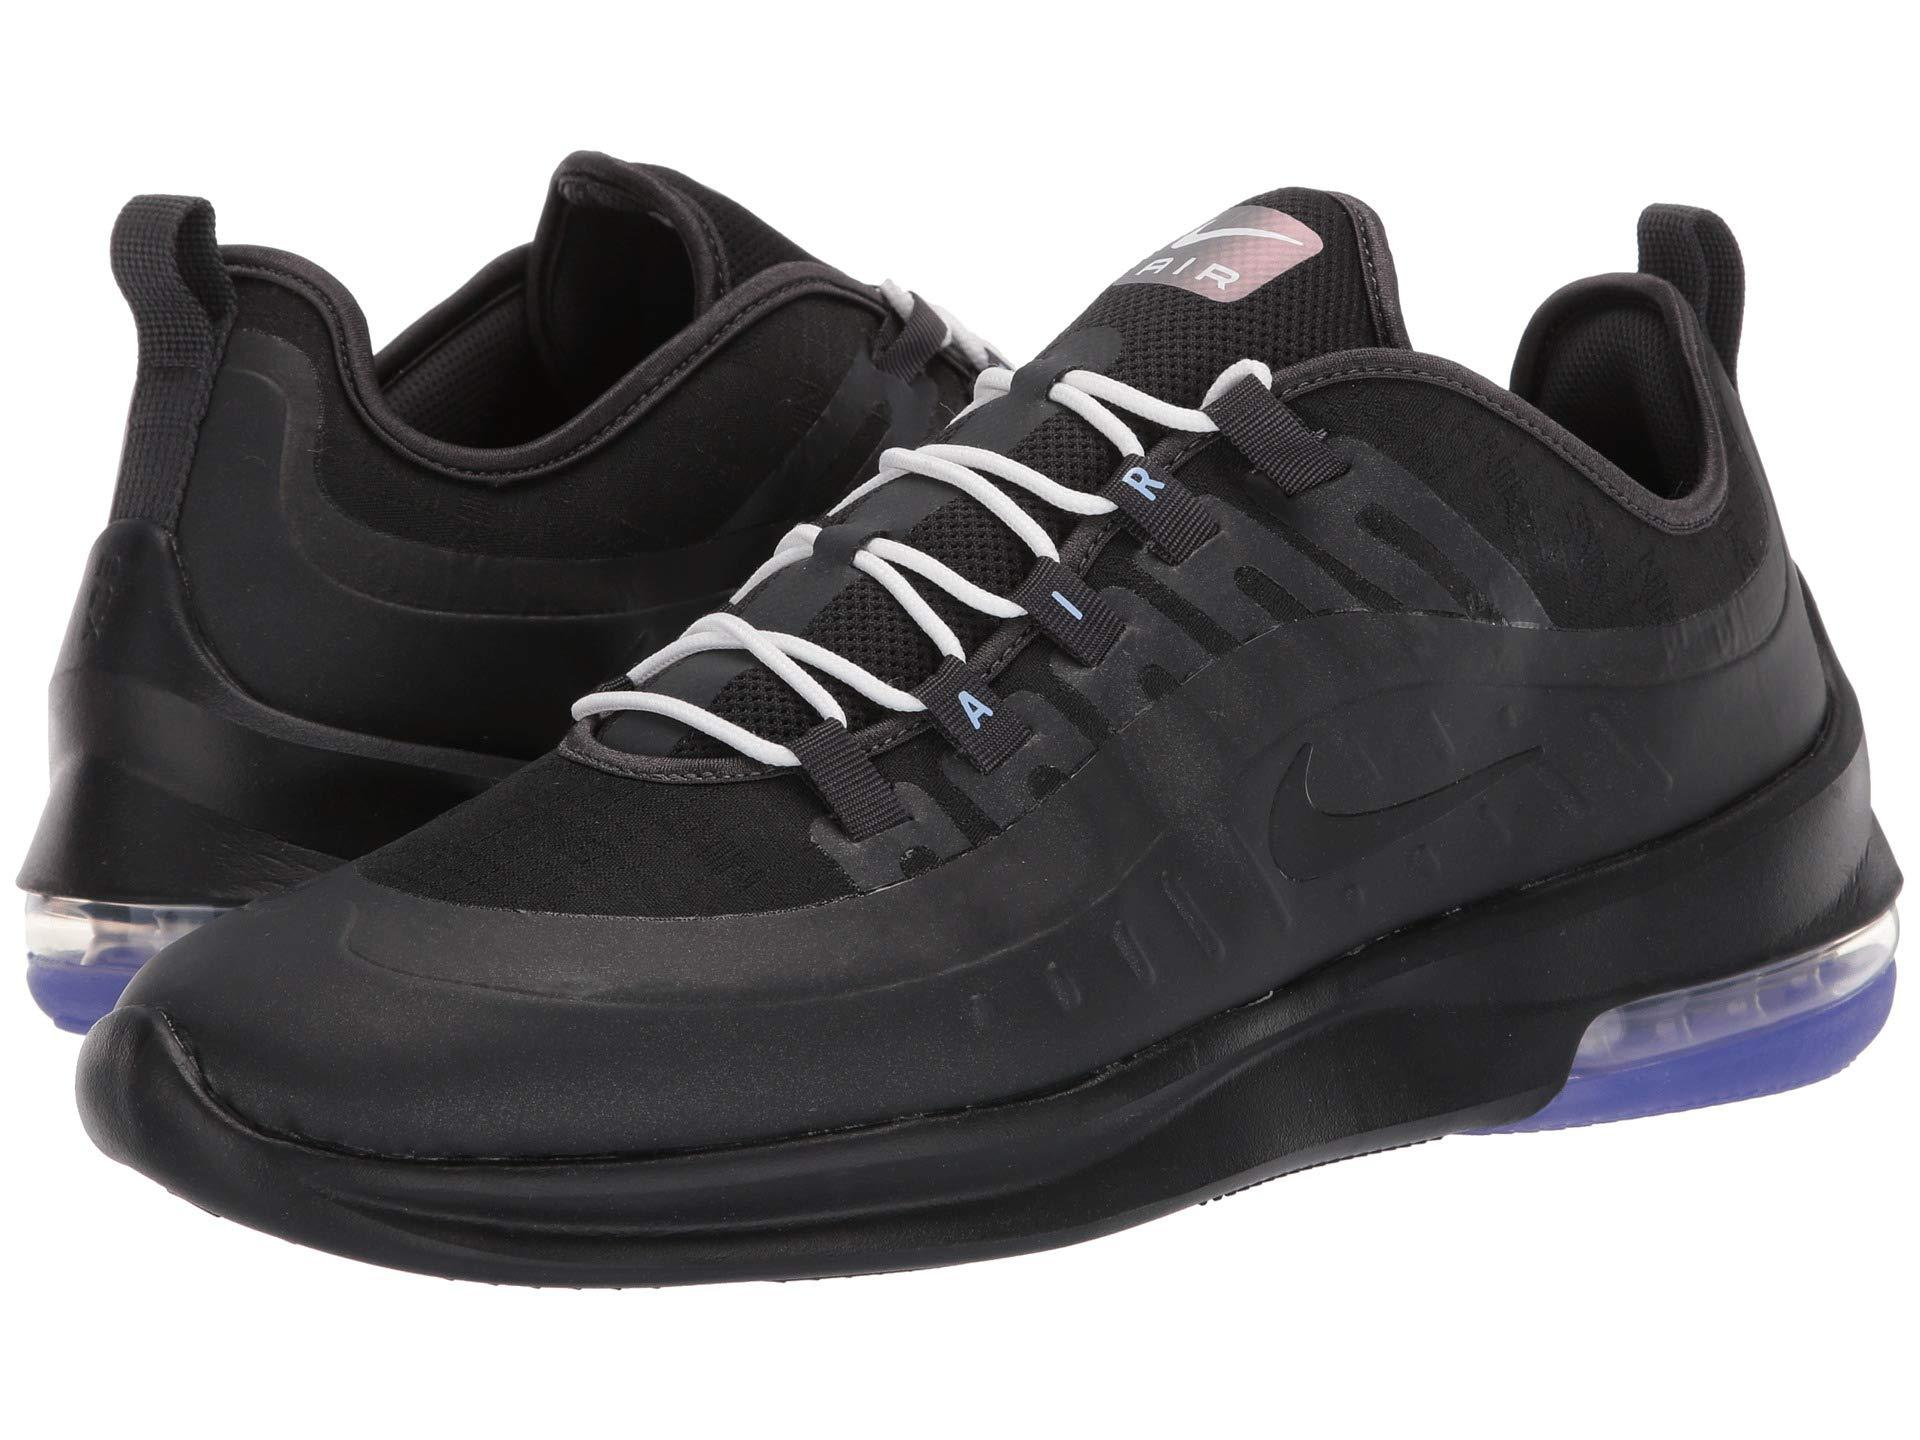 8c6b83e37e6ba Lyst - Nike Air Max Axis Premium (black black anthracite space ...